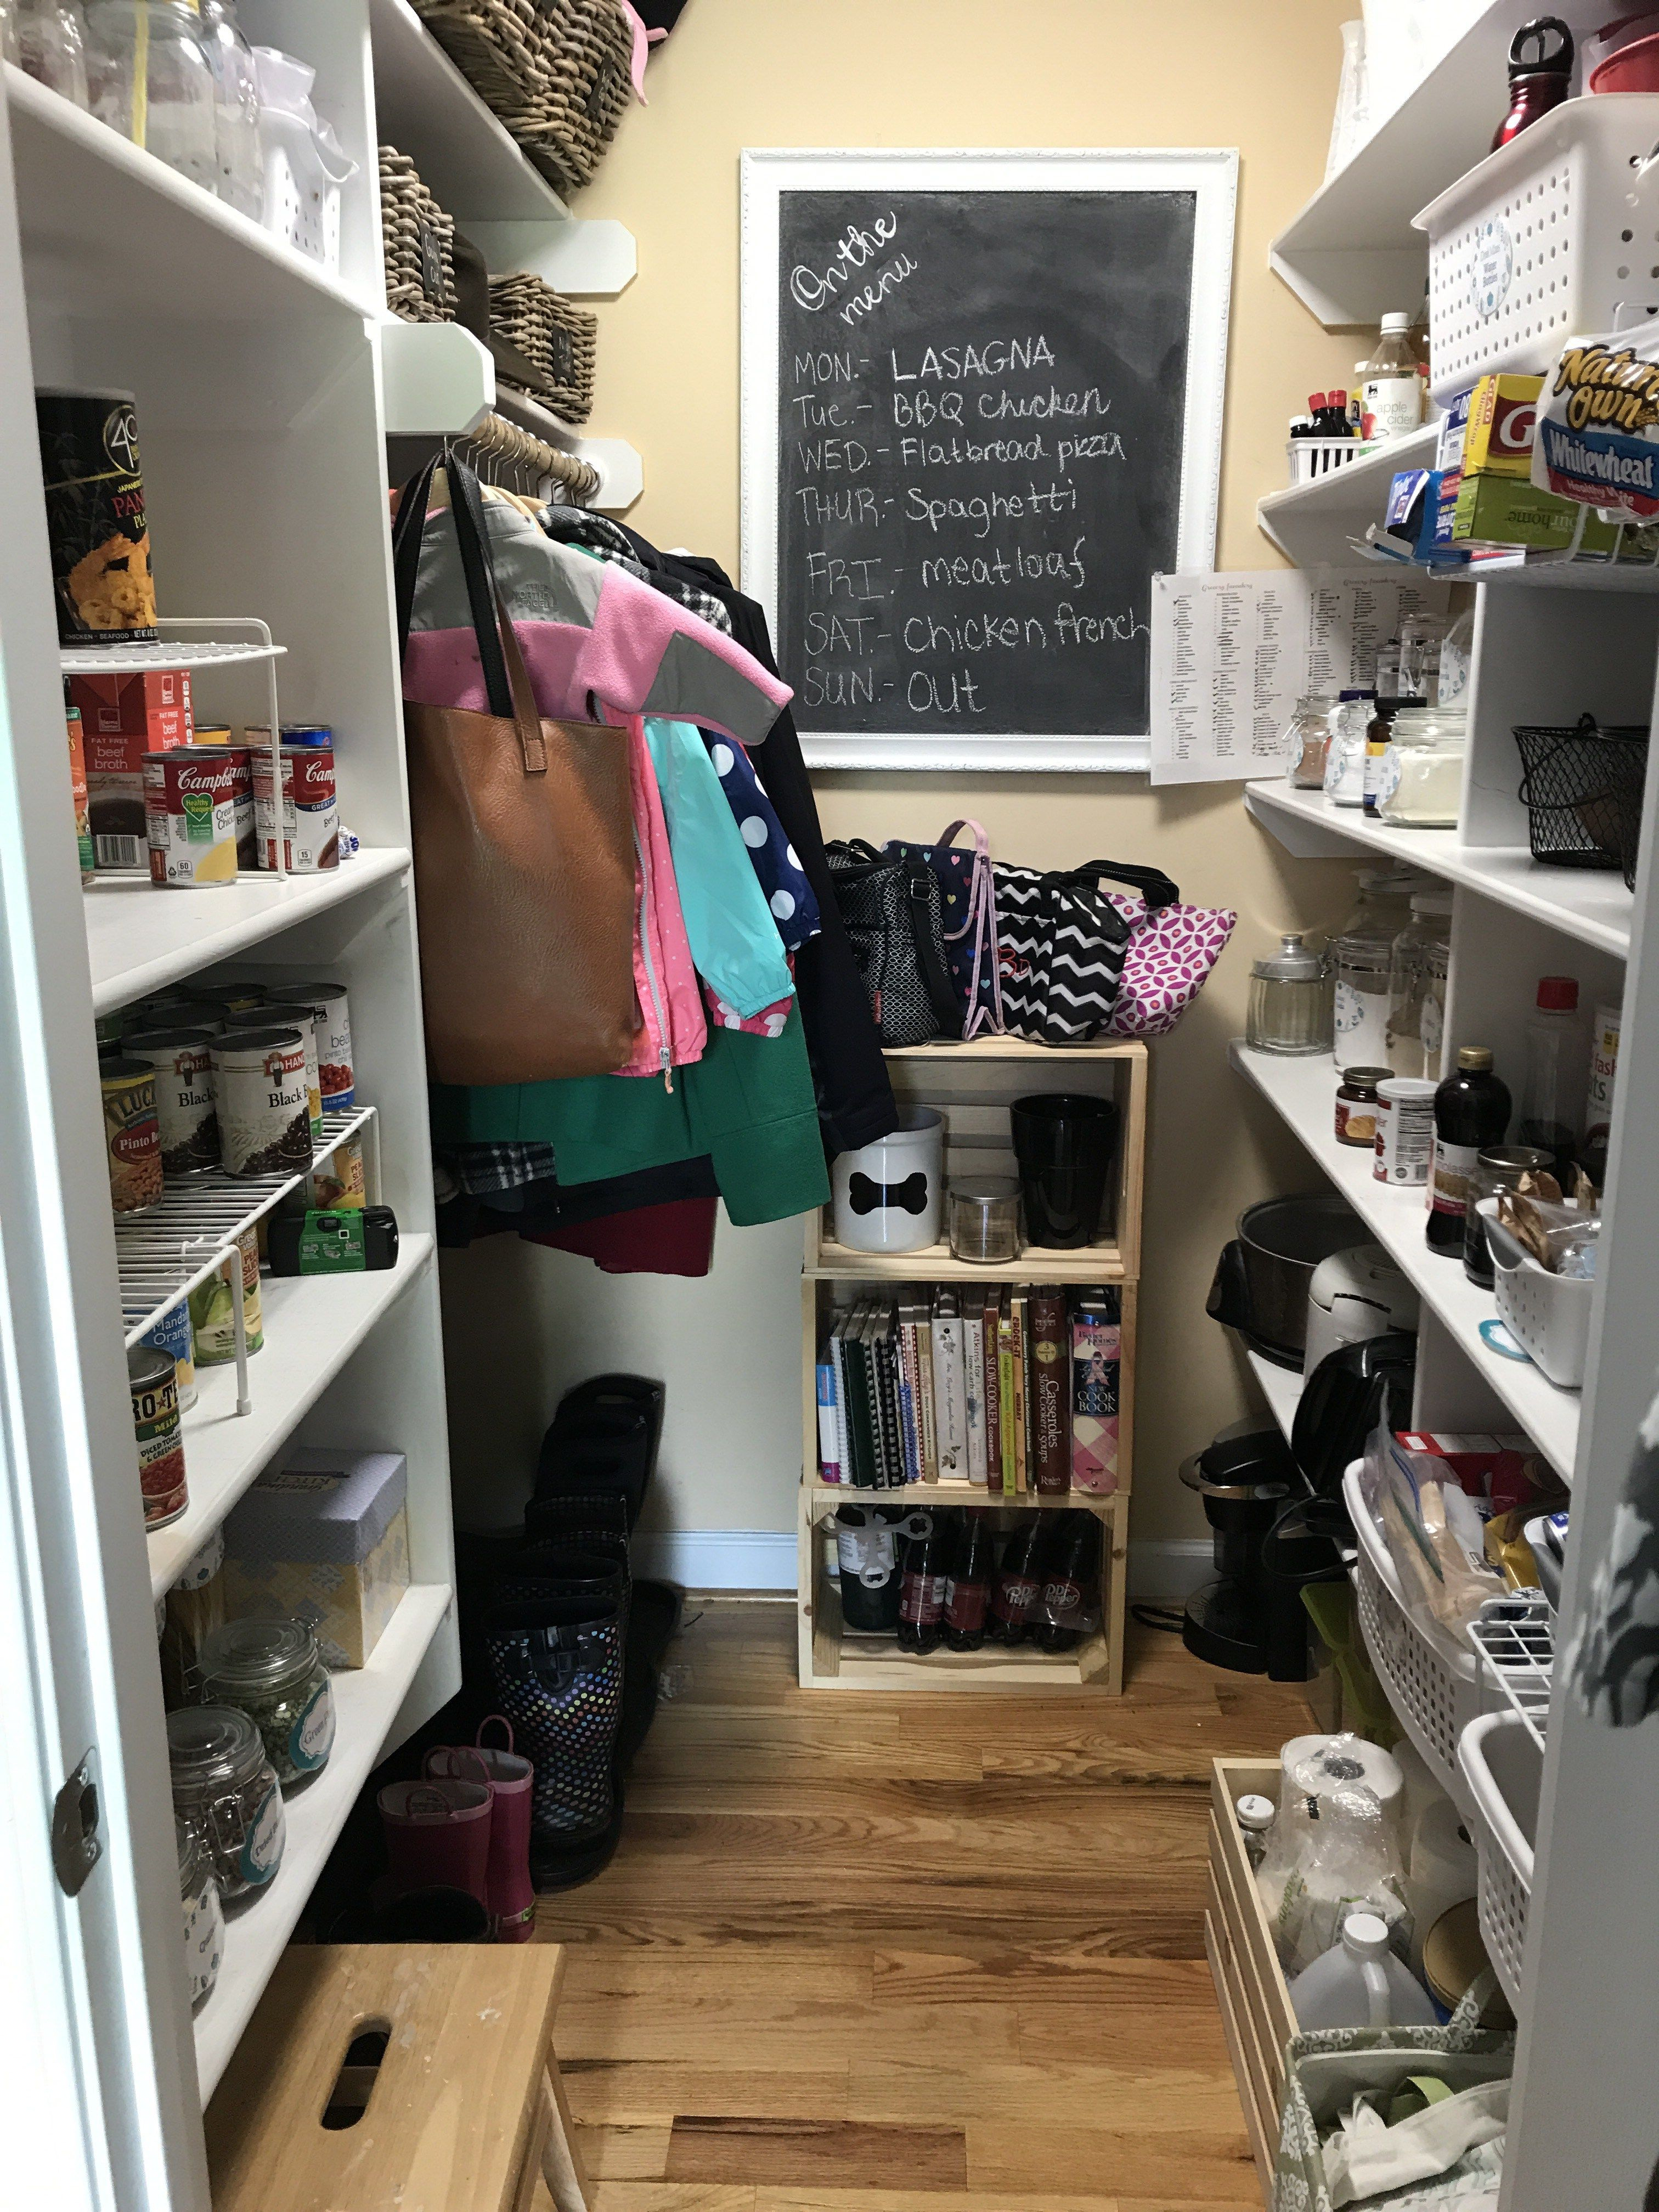 Our pantry used to be very well organized, but we got a little lazy. And then we got even lazier. Things weren't put away, things weren't paired down and thrown away, and things were ju…